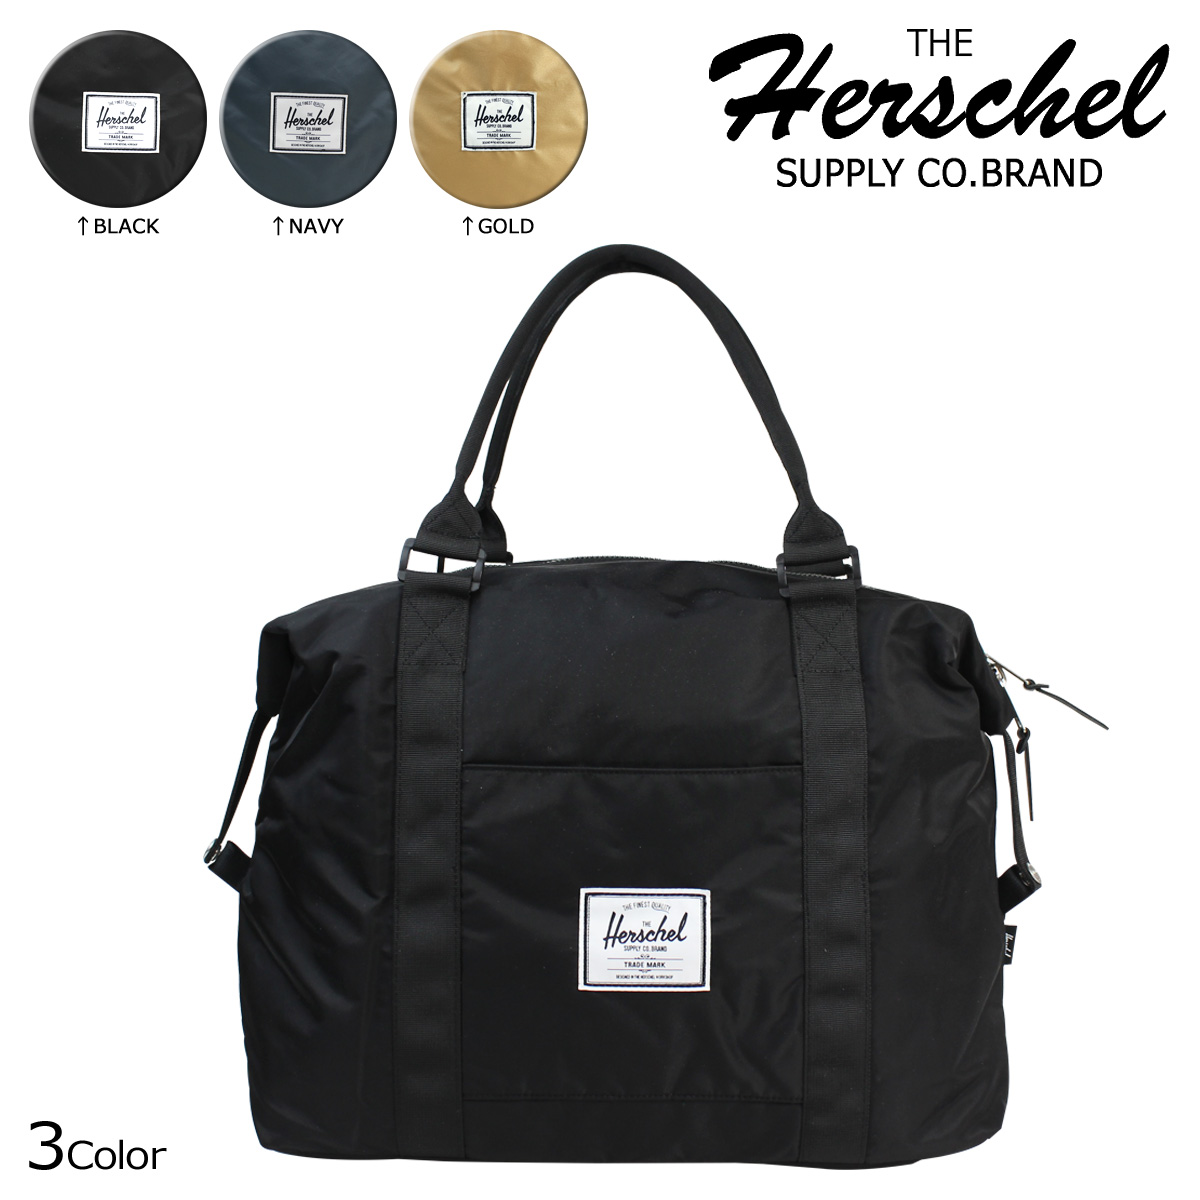 Herschel Novel Bag | Herschel Duffle Bag | Herschel Overnight Bag